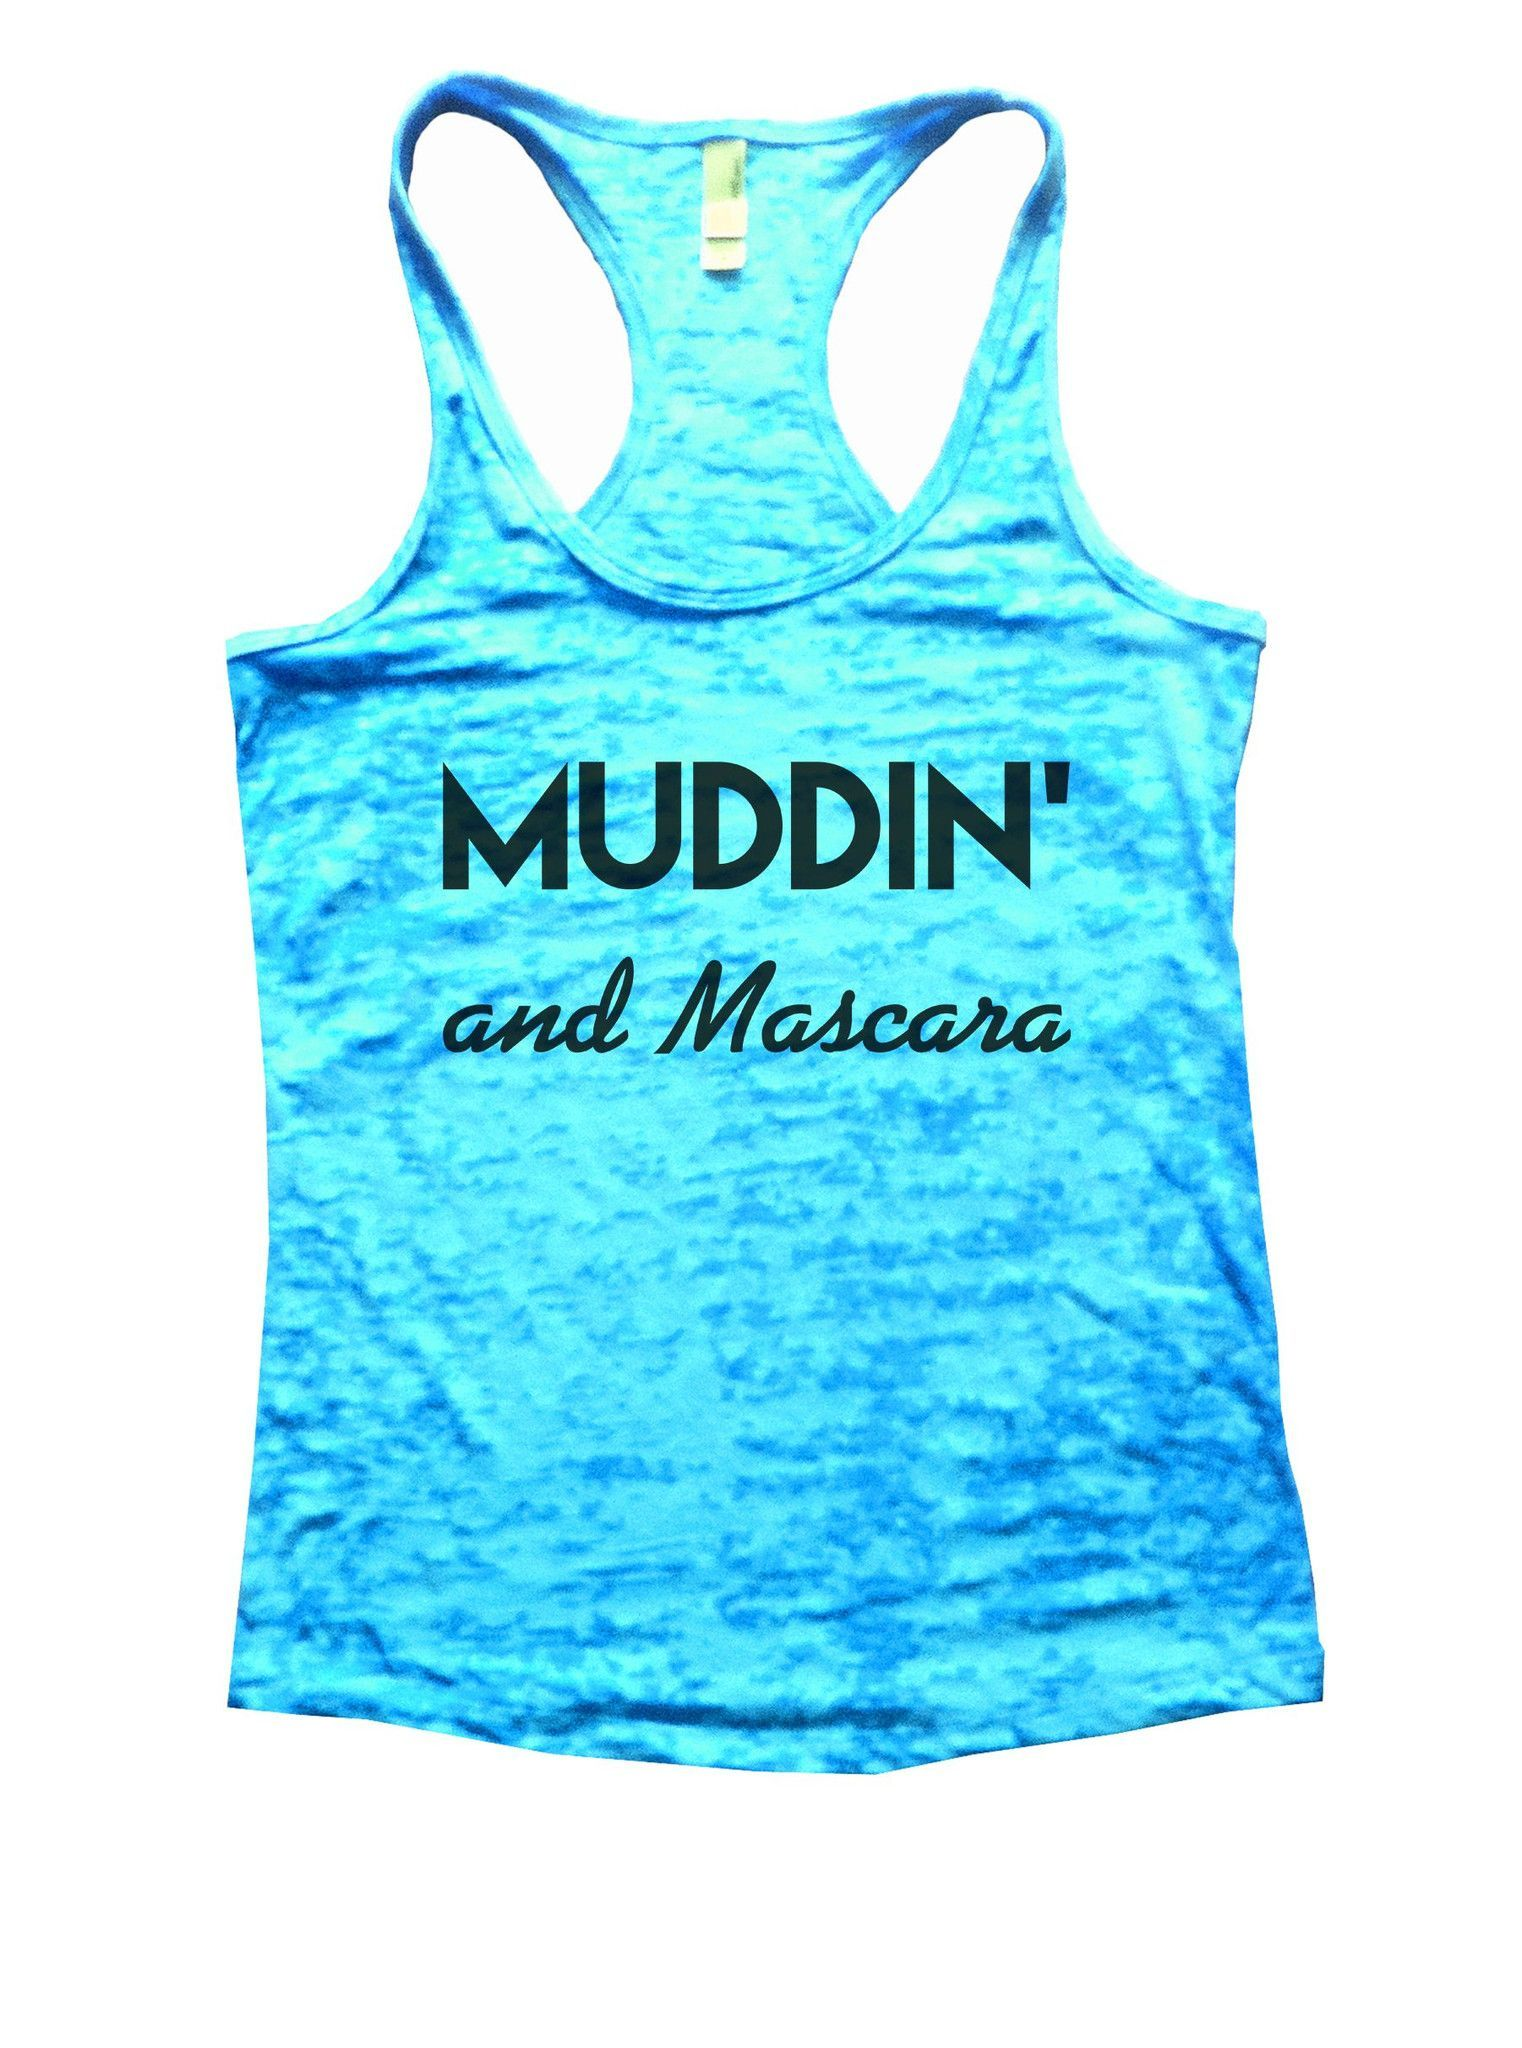 Muddin And Mascara Burnout Tank Top By Funny Threadz - 803